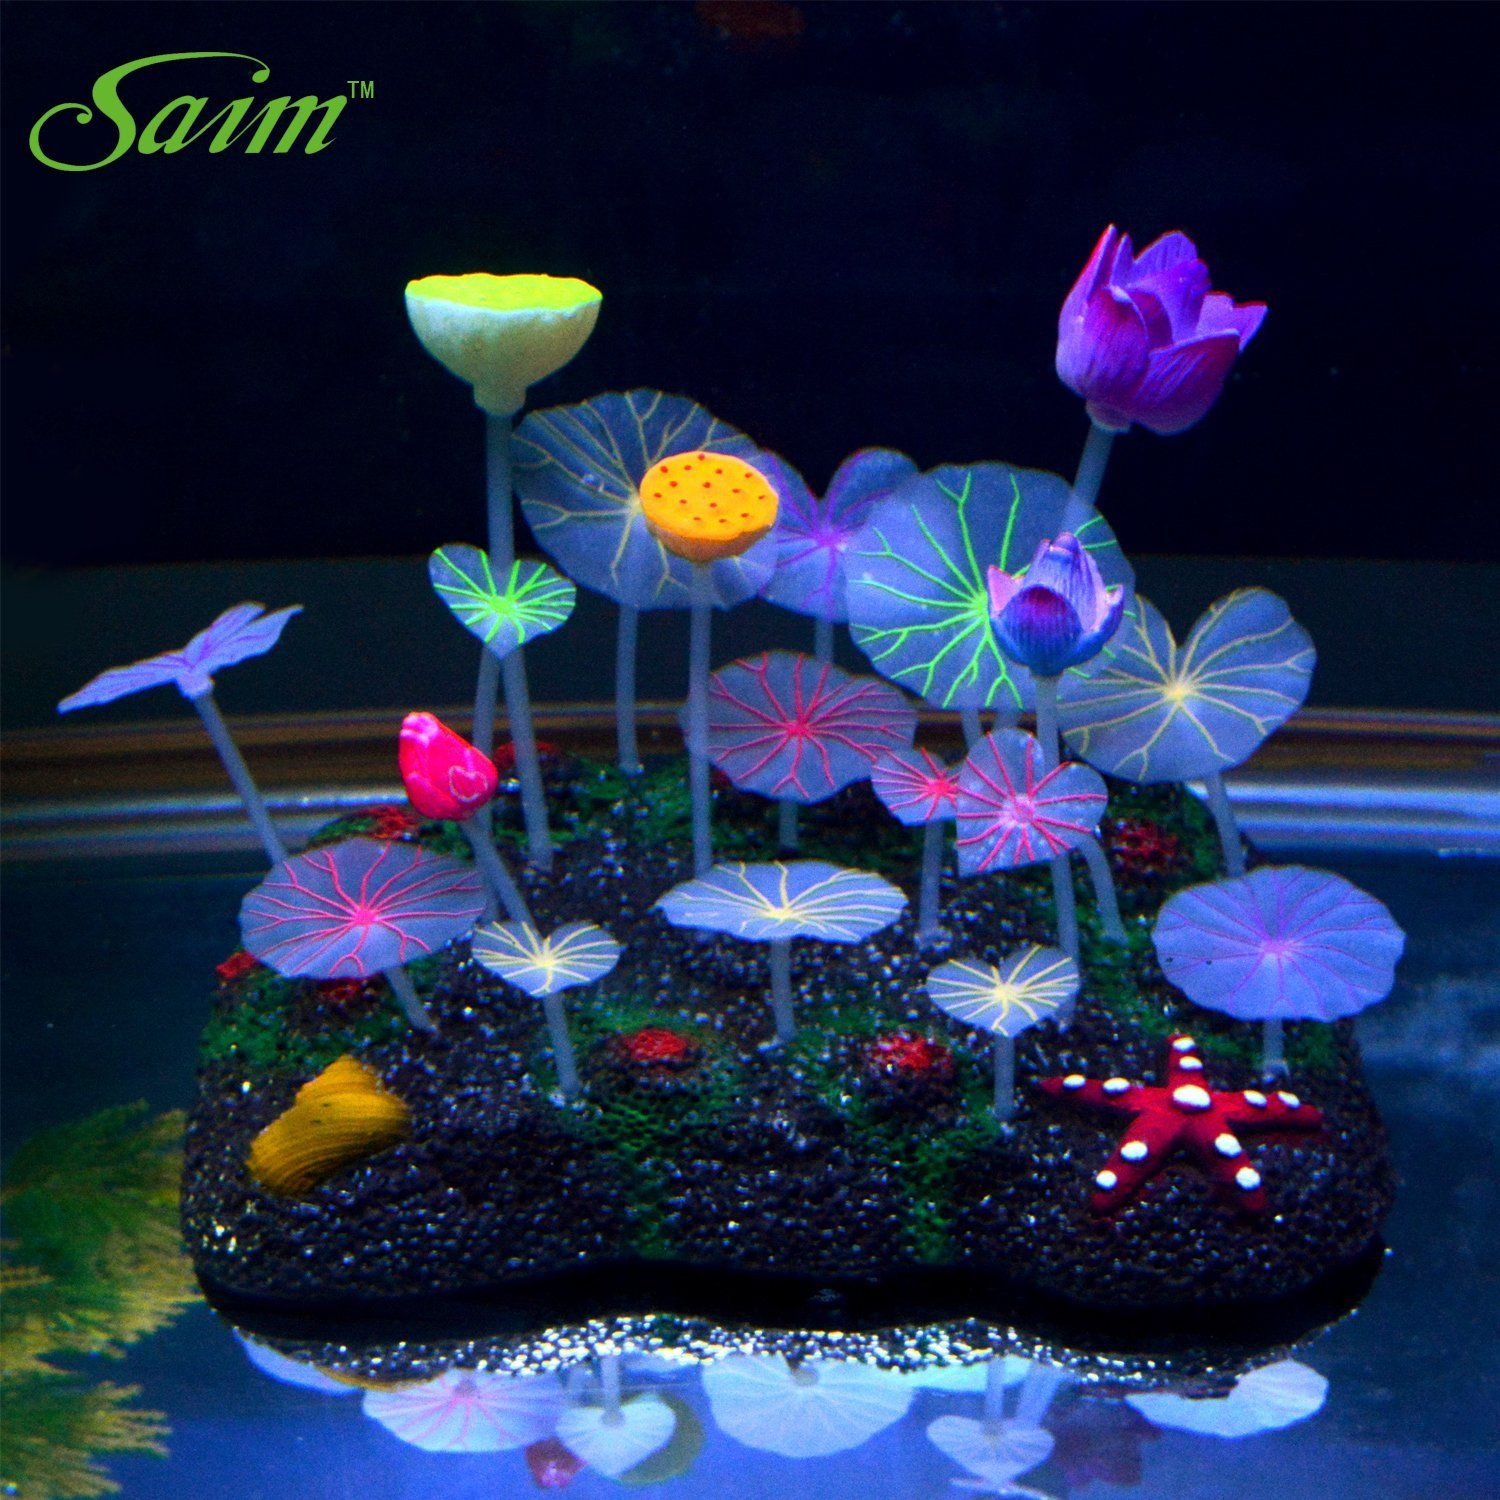 Amazon Saim Glowing Effect Artificial Lotus Root Leaves and